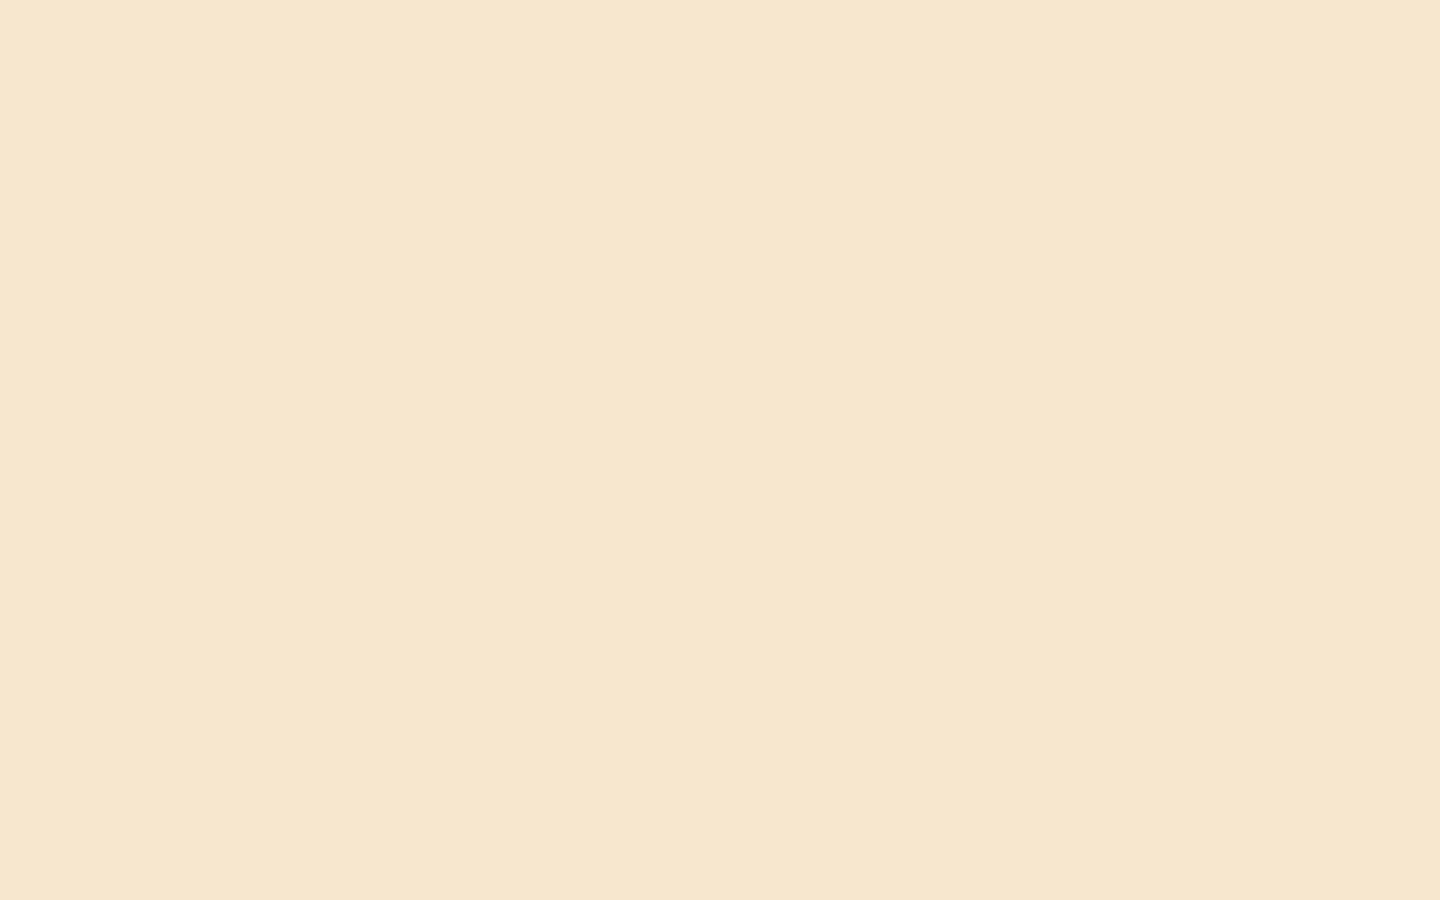 1440x900 Champagne Solid Color Background